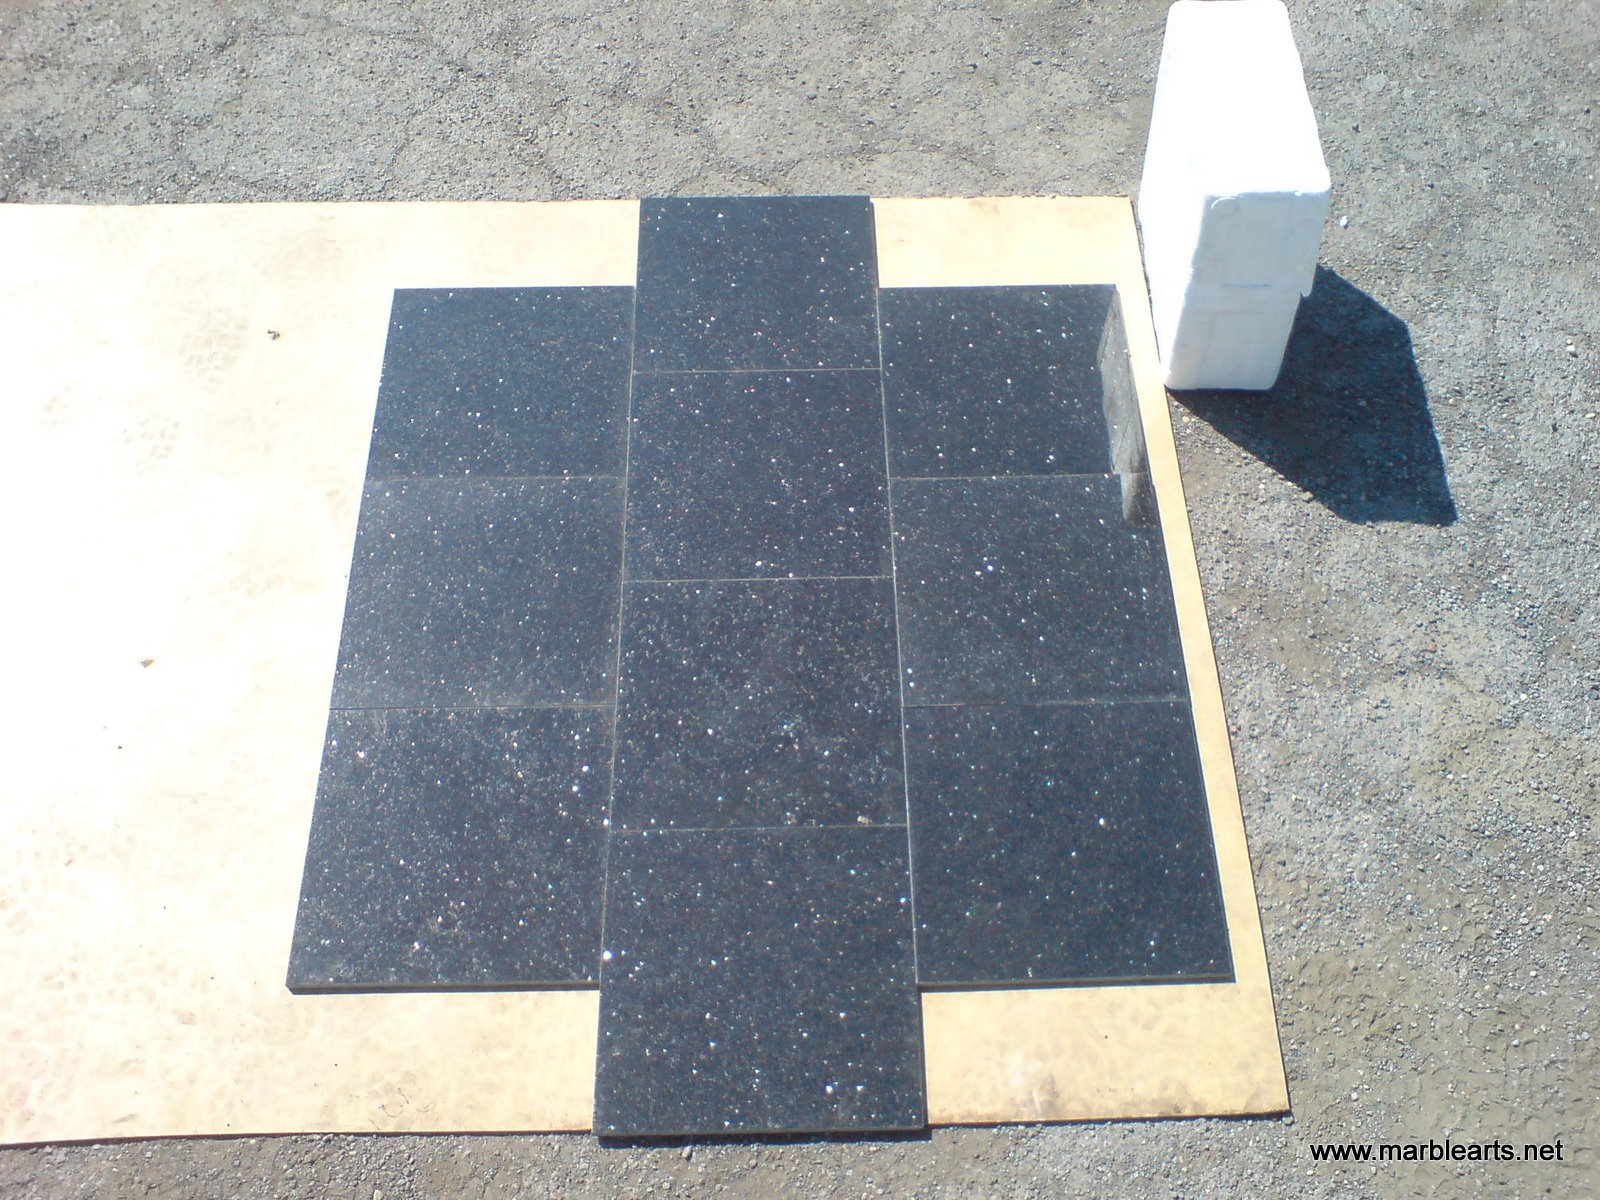 Marble arts tiles star galaxy granite tiles dailygadgetfo Images